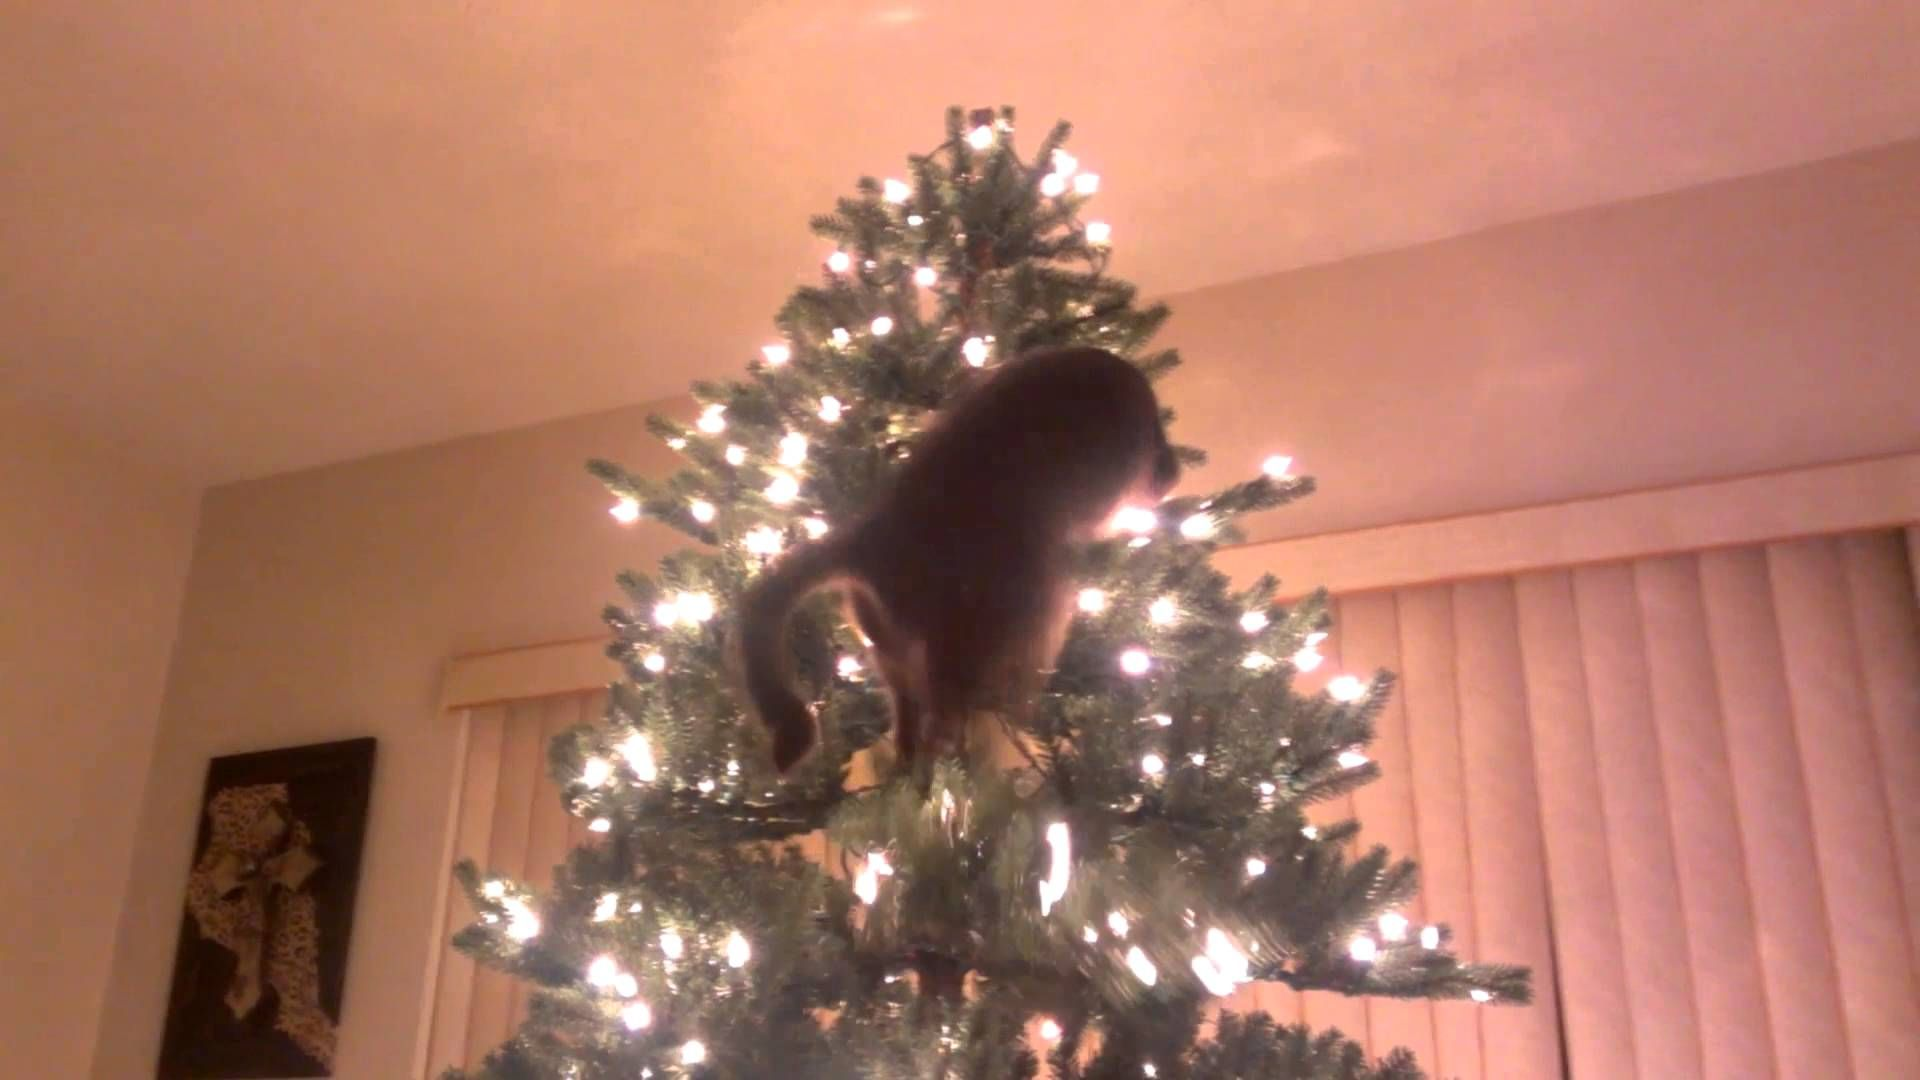 Sesshomaru the Cat Attempts to Climb the Christmas Tree